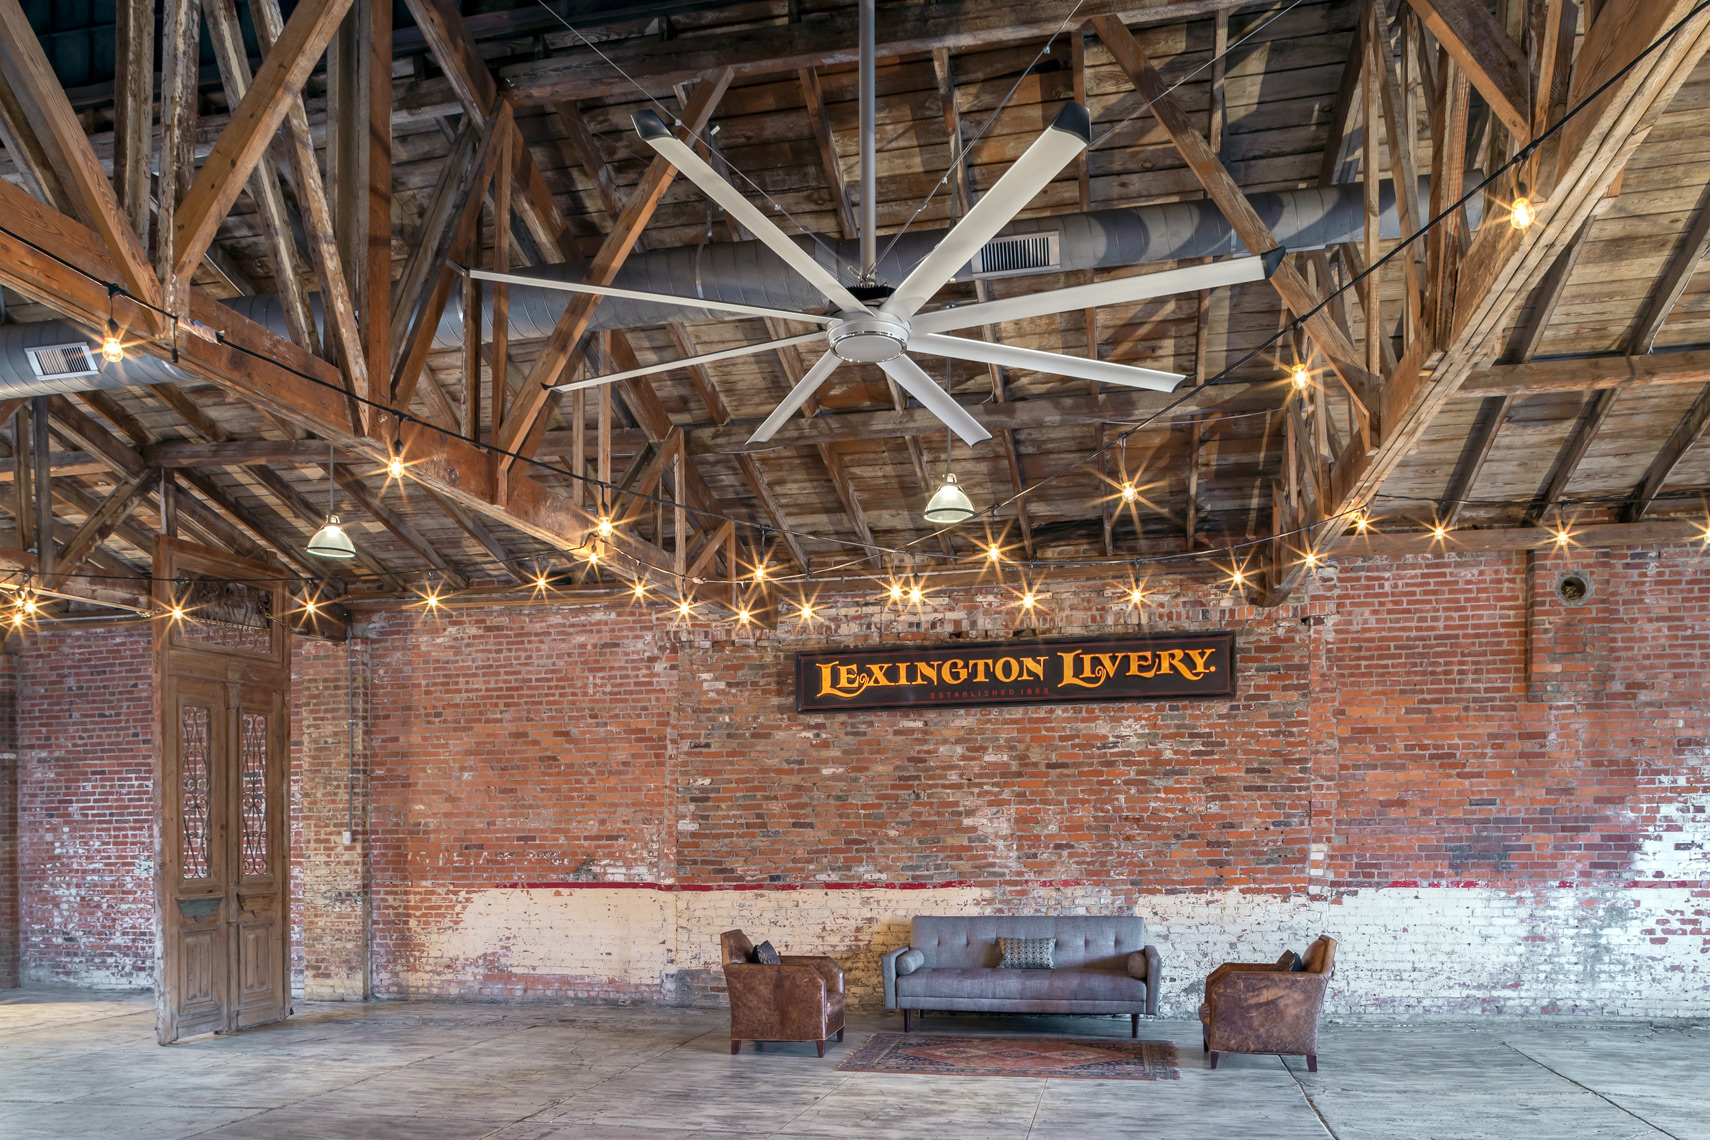 historic urban livery renovated to event space with fan